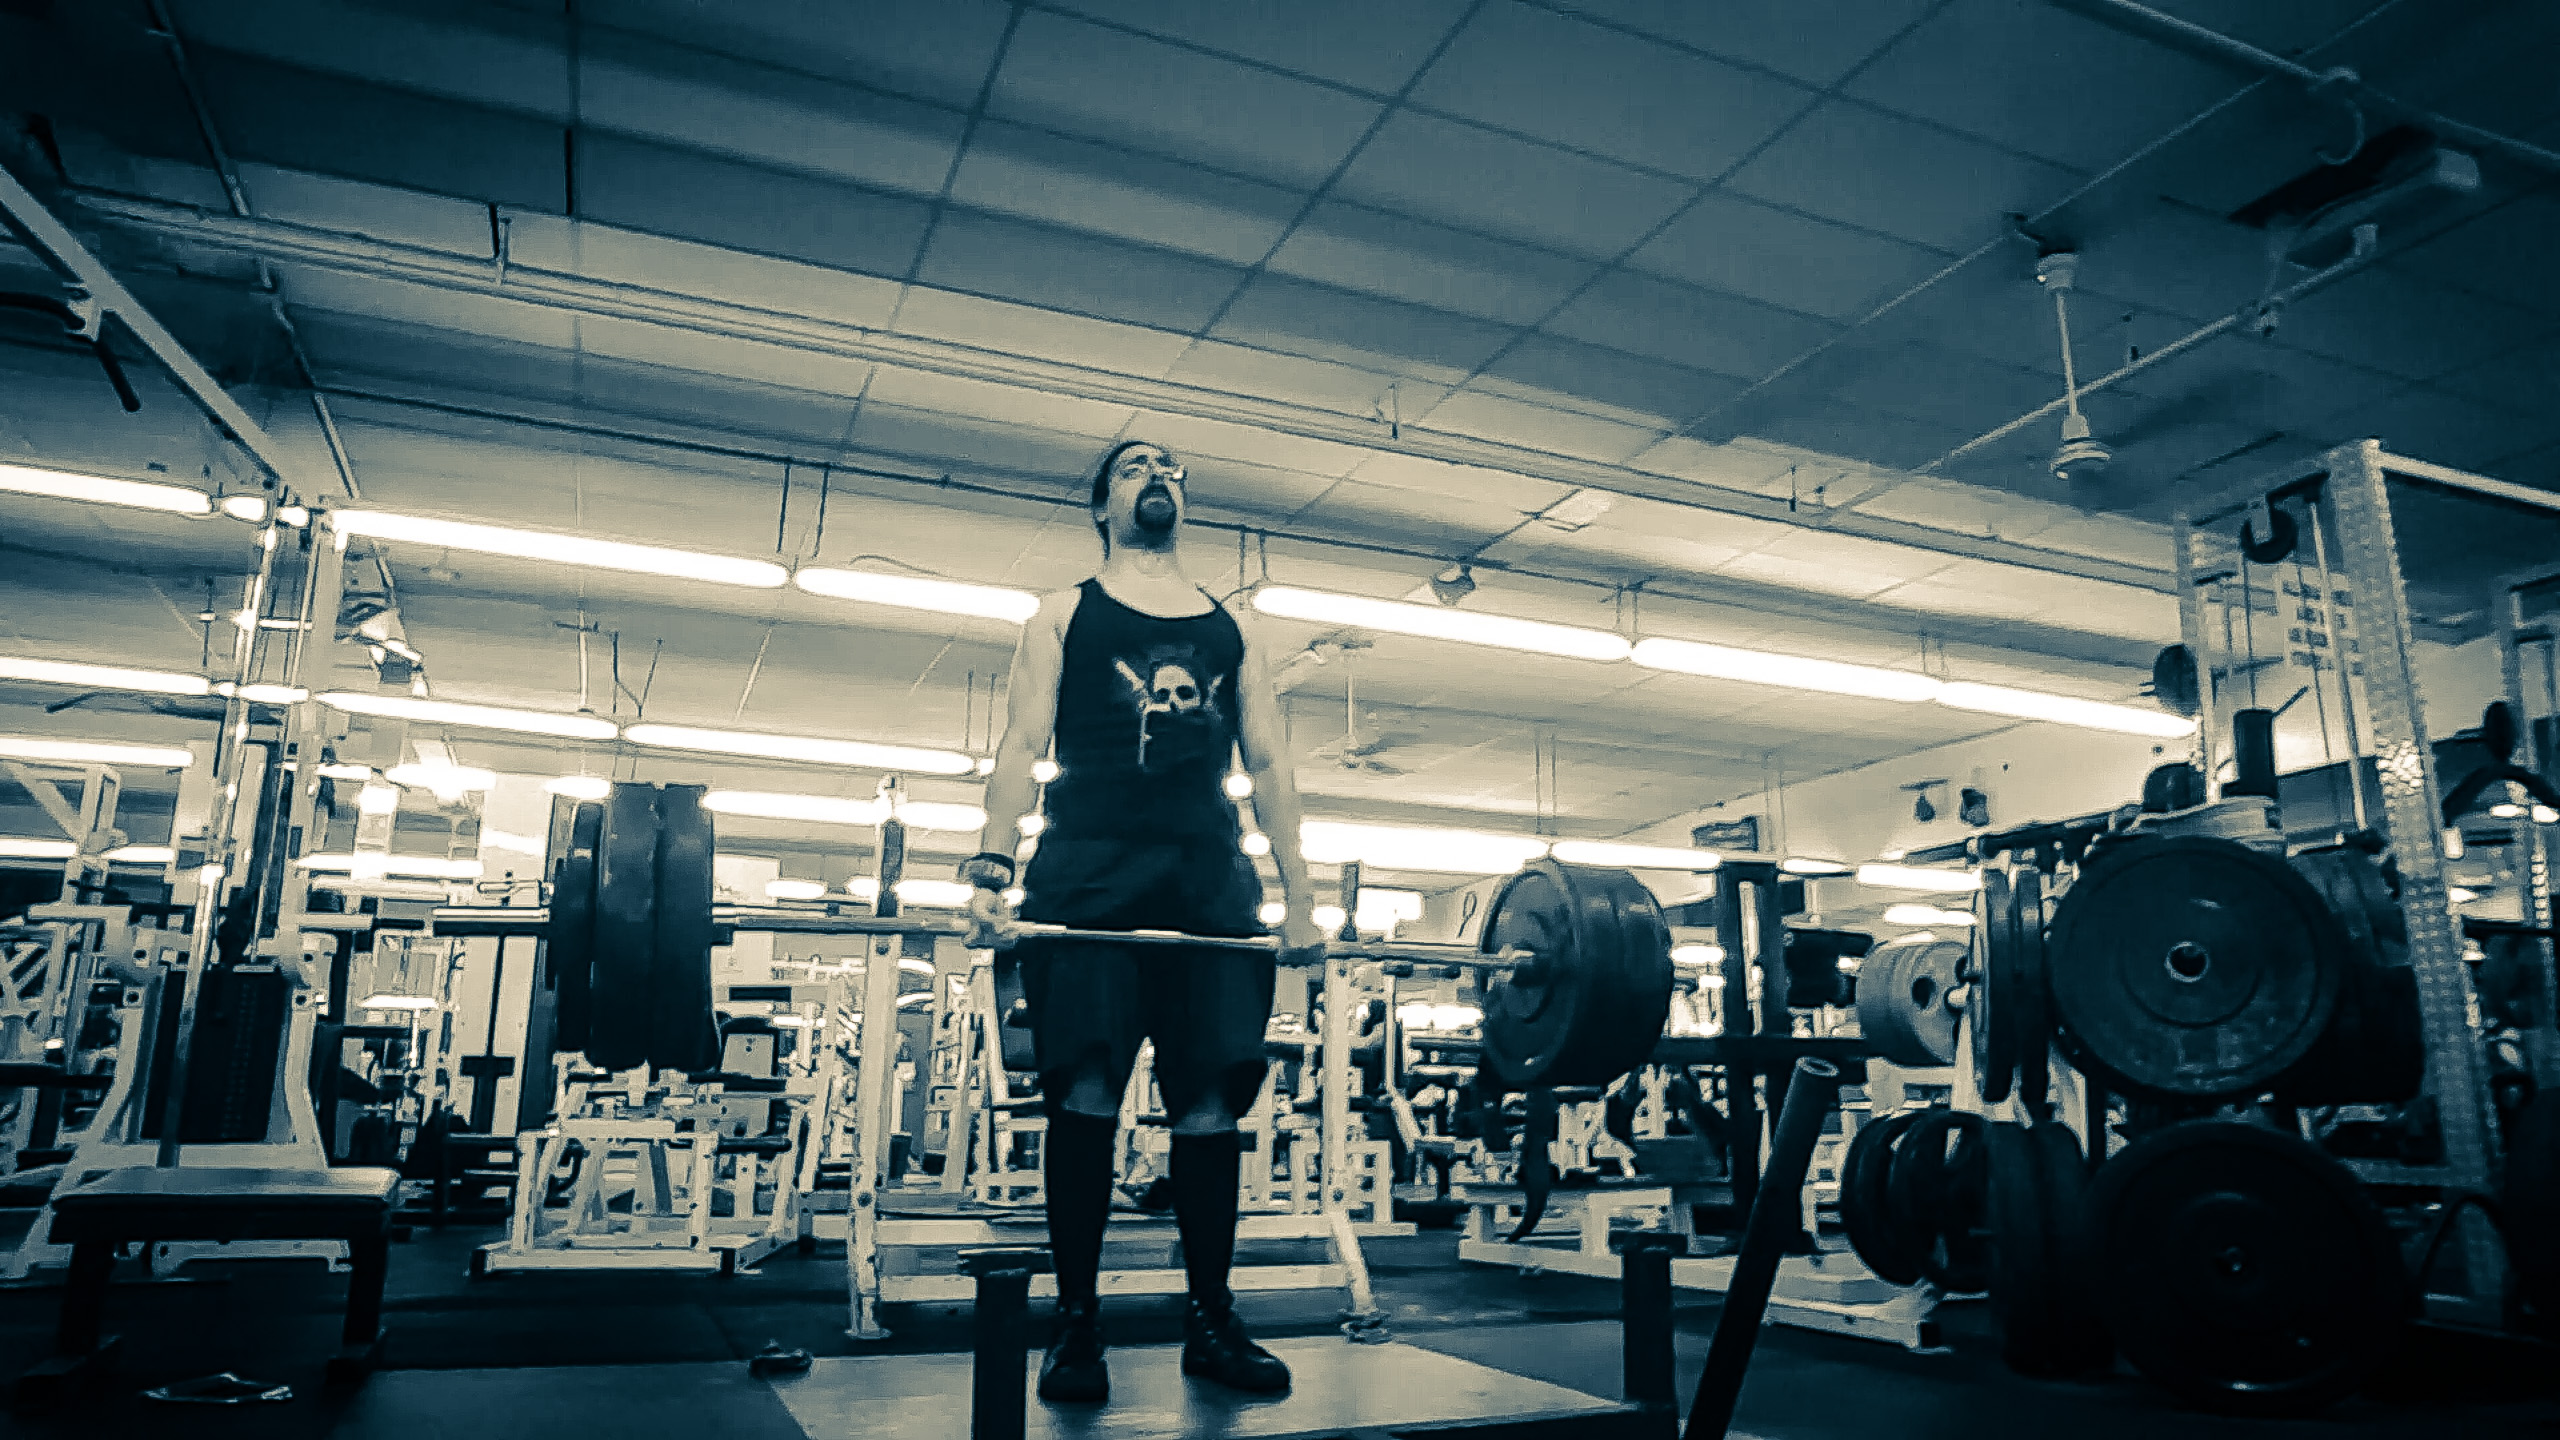 Deadlift with Hatred